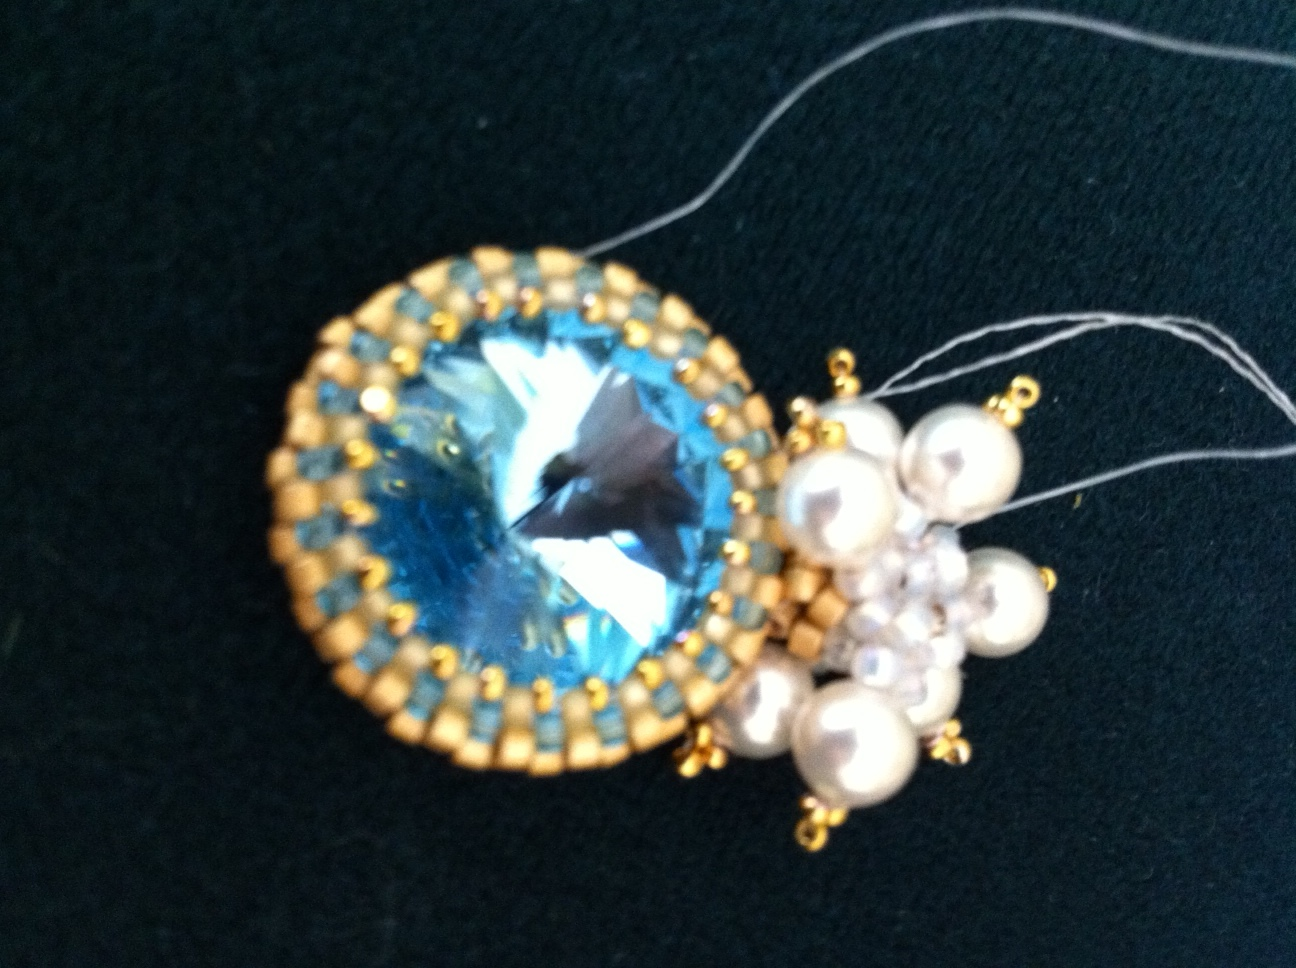 Dark background. An aquamarine rivoli bezeled with gold and aquamarine seed beads, topped with white pearl accents and visible working threads.